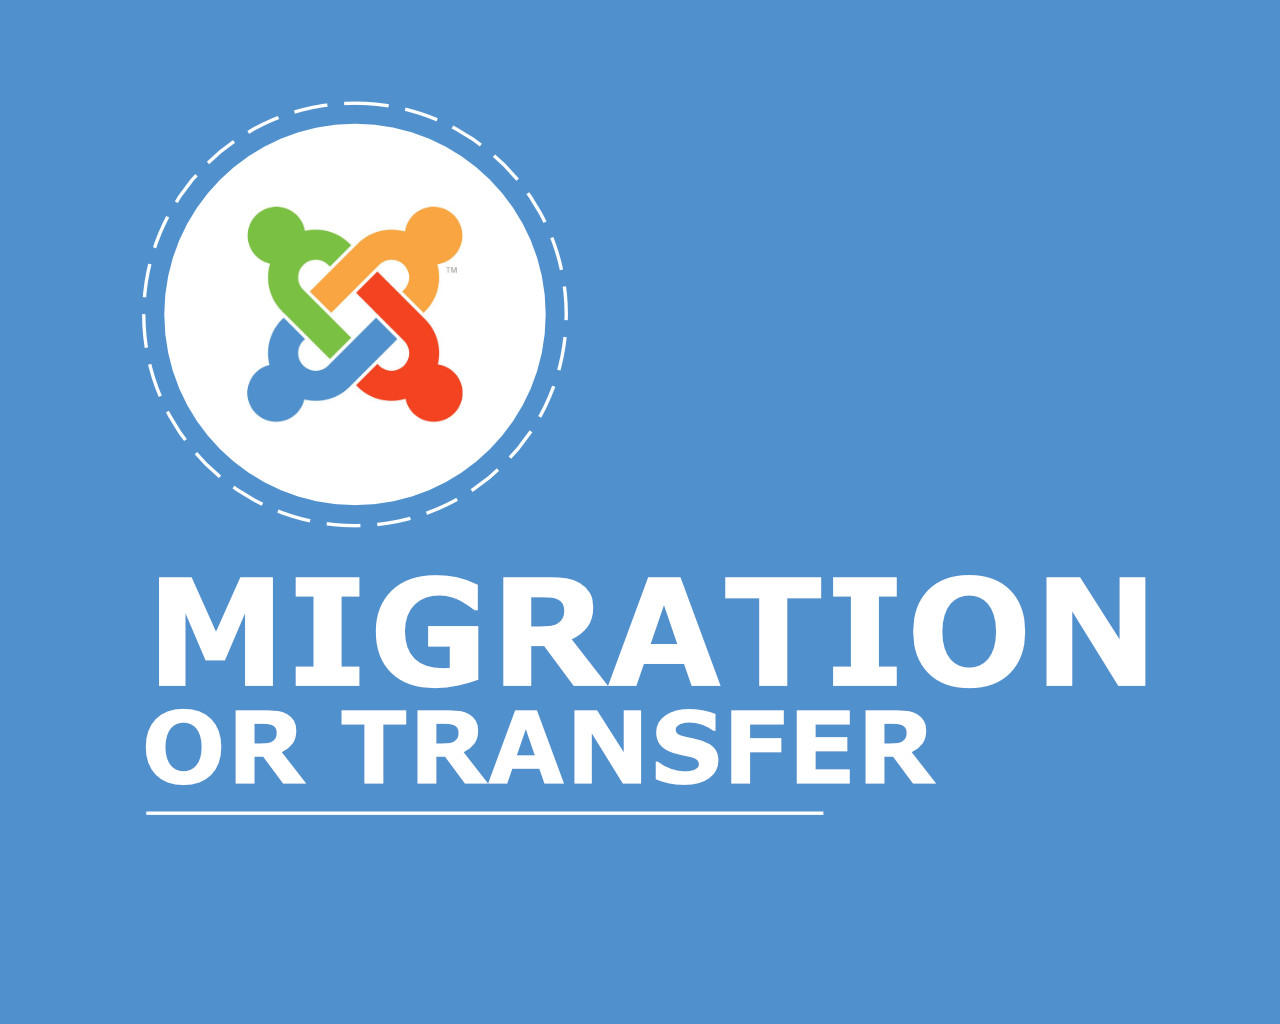 Joomla Migration or Transfer. by jassdesigngroup - 105762